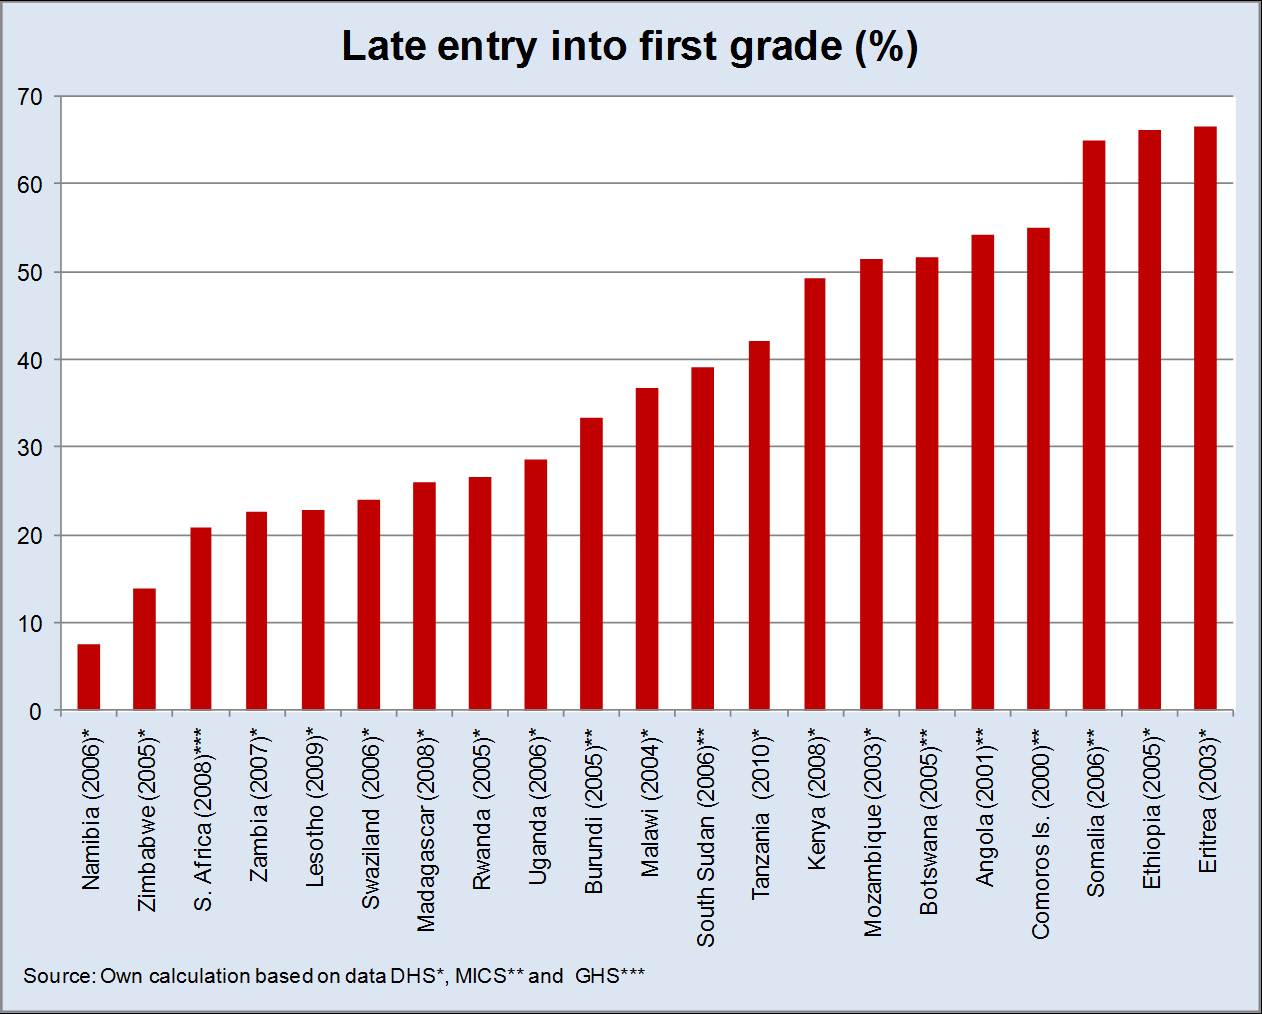 3.3 Late entry into primary school as 14 per cent and 7 per cent, respectively (Figure 8).